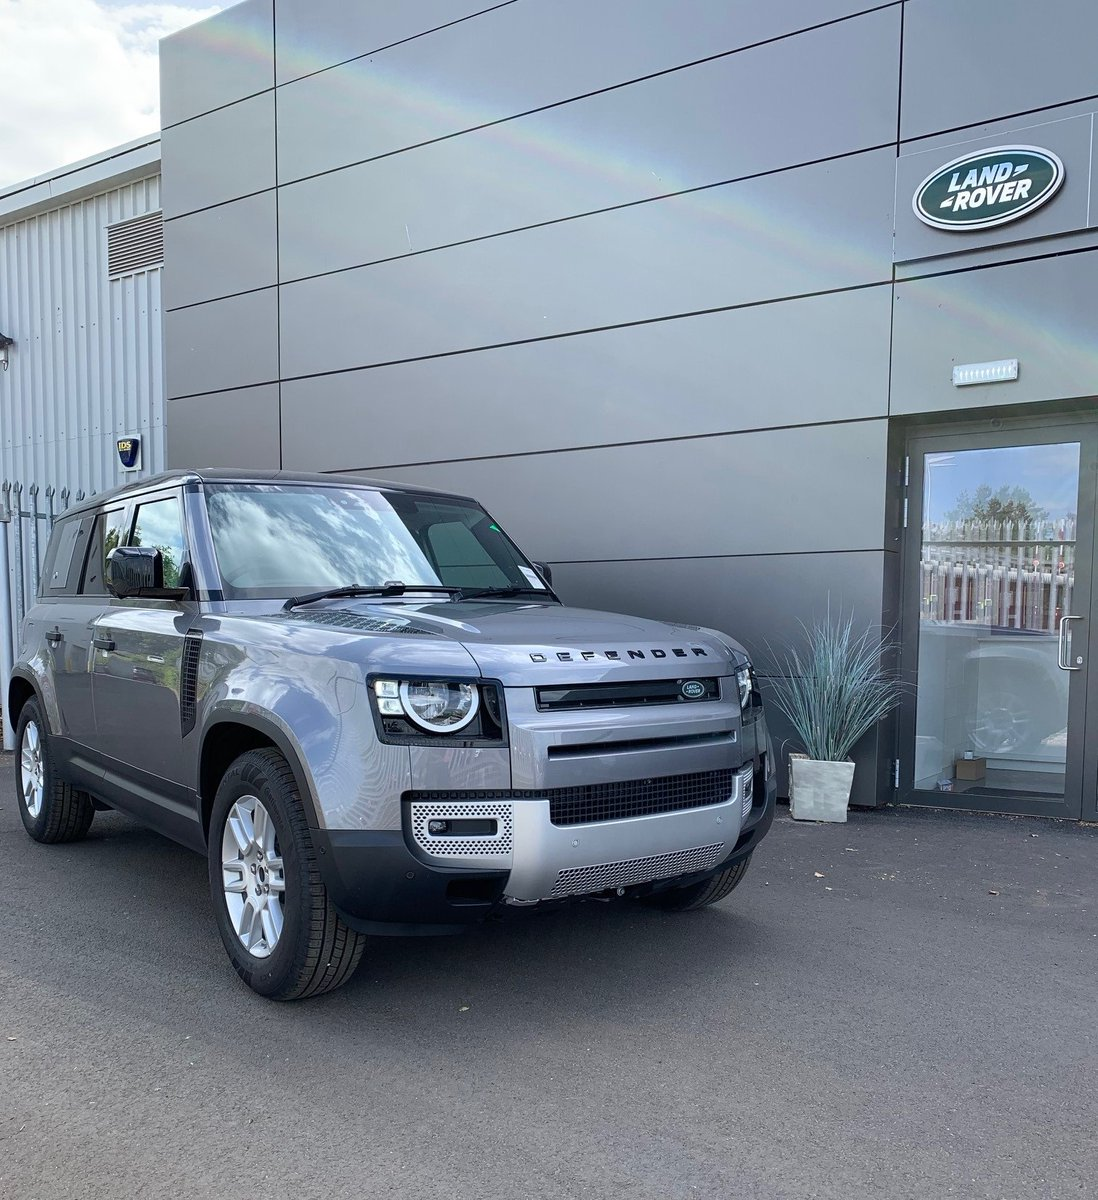 The All New Land Rover Defender has arrived @LandRoverKelso 😁☀️  Enquire today to learn more about this iconic vehicle...  📞 01573 224345  #landroveruk #landrover #defender #icon #capability #kelso #scottishborders #lloydmotors https://t.co/Egoaydl64G